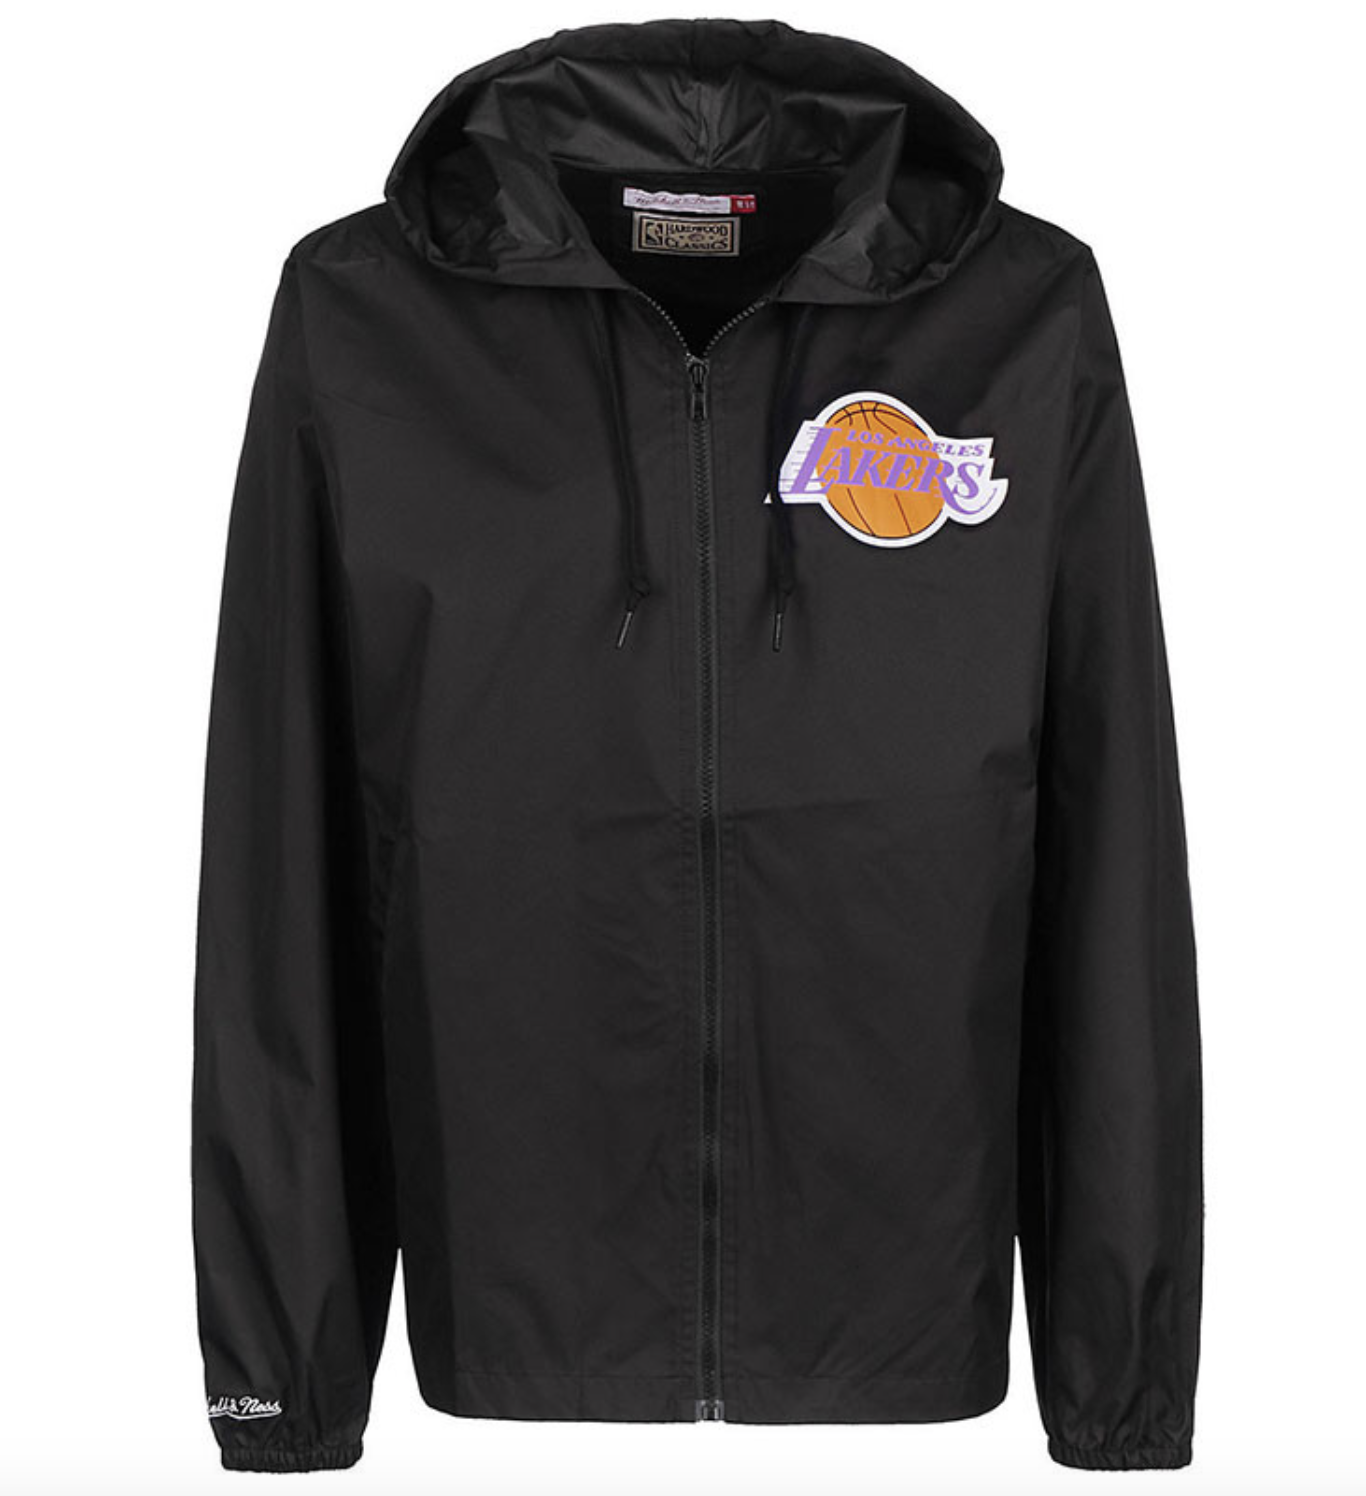 Mitchells & Ness Los Angeles Lakers Windrunner  (Authentic)